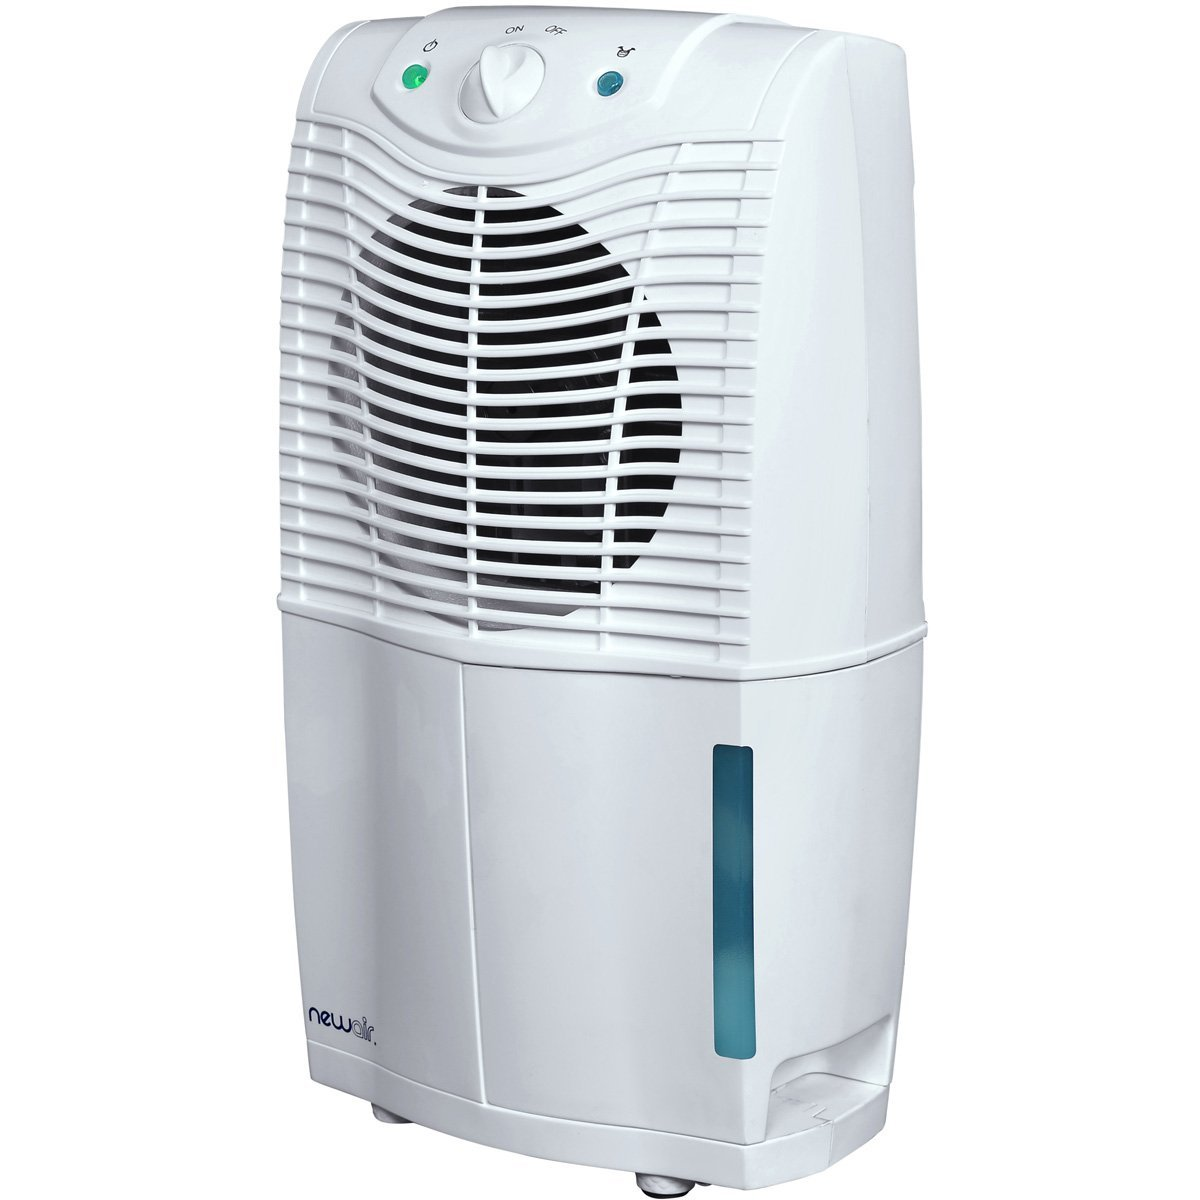 Top 5 Best Room Dehumidifier and Reviews 2015 #27A472